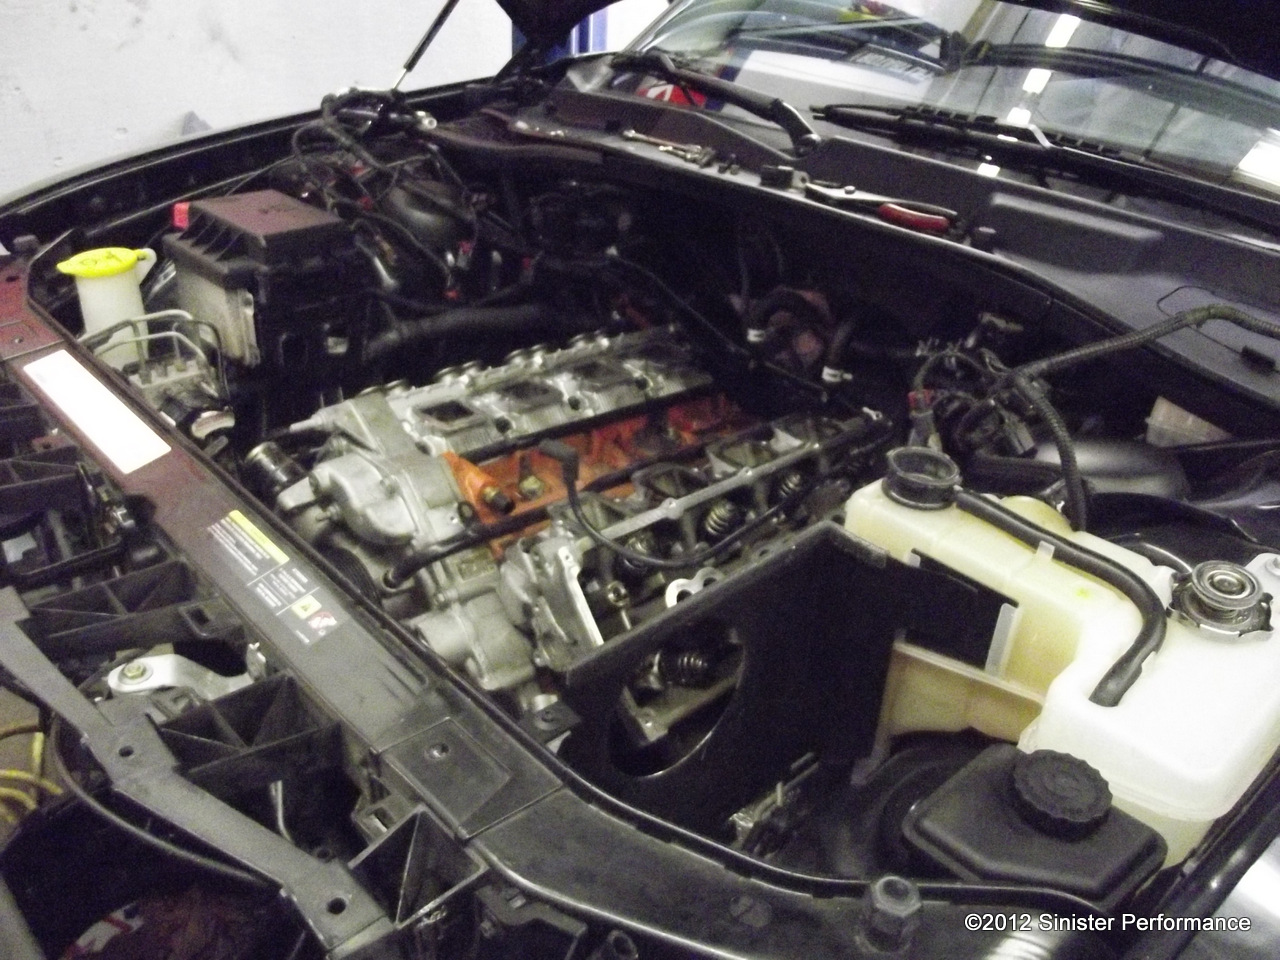 Fineline Imports 402 Whp All Motor 2006 Charger Srt8 Fli Tuned Sinister